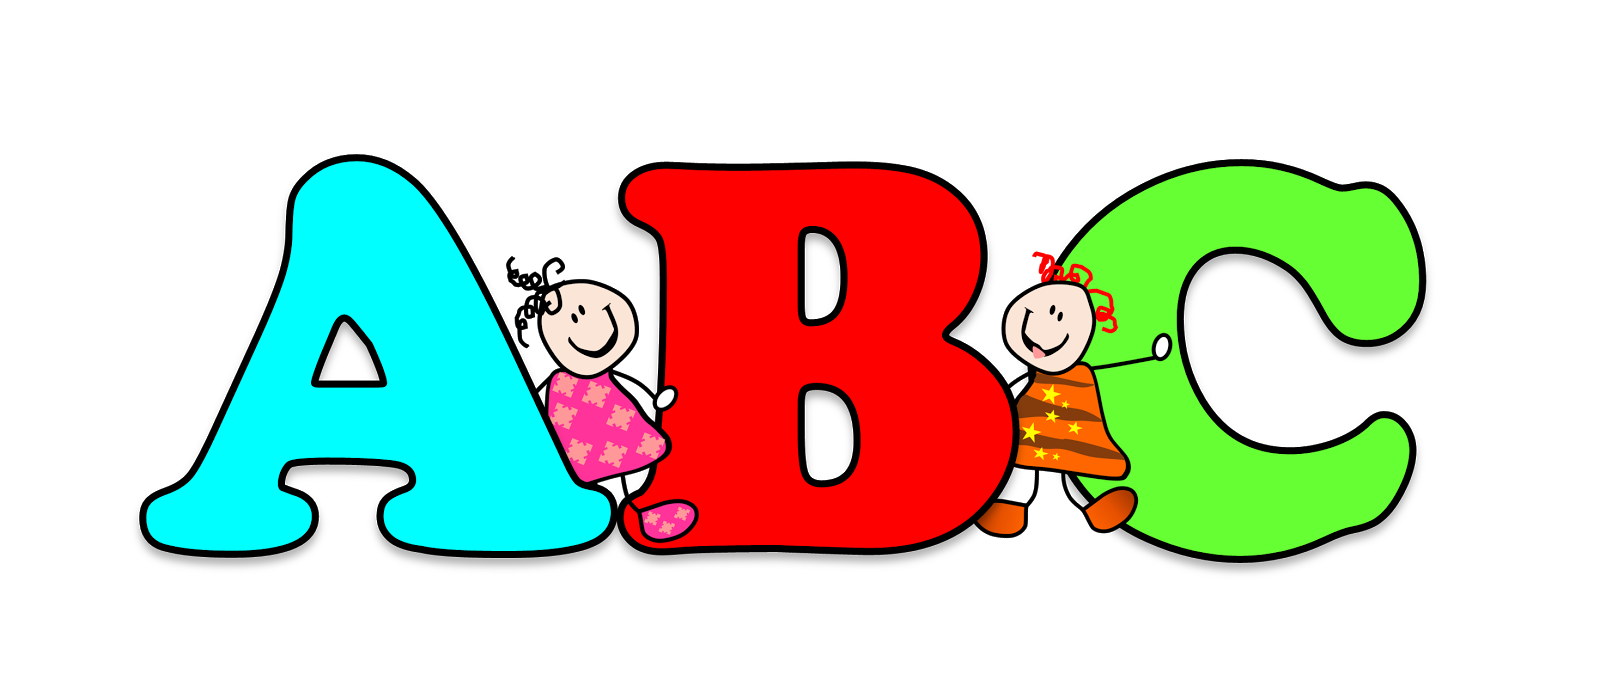 Clipart alphabet letters for kids image transparent Free Abc Clipart Pictures - Clipartix image transparent